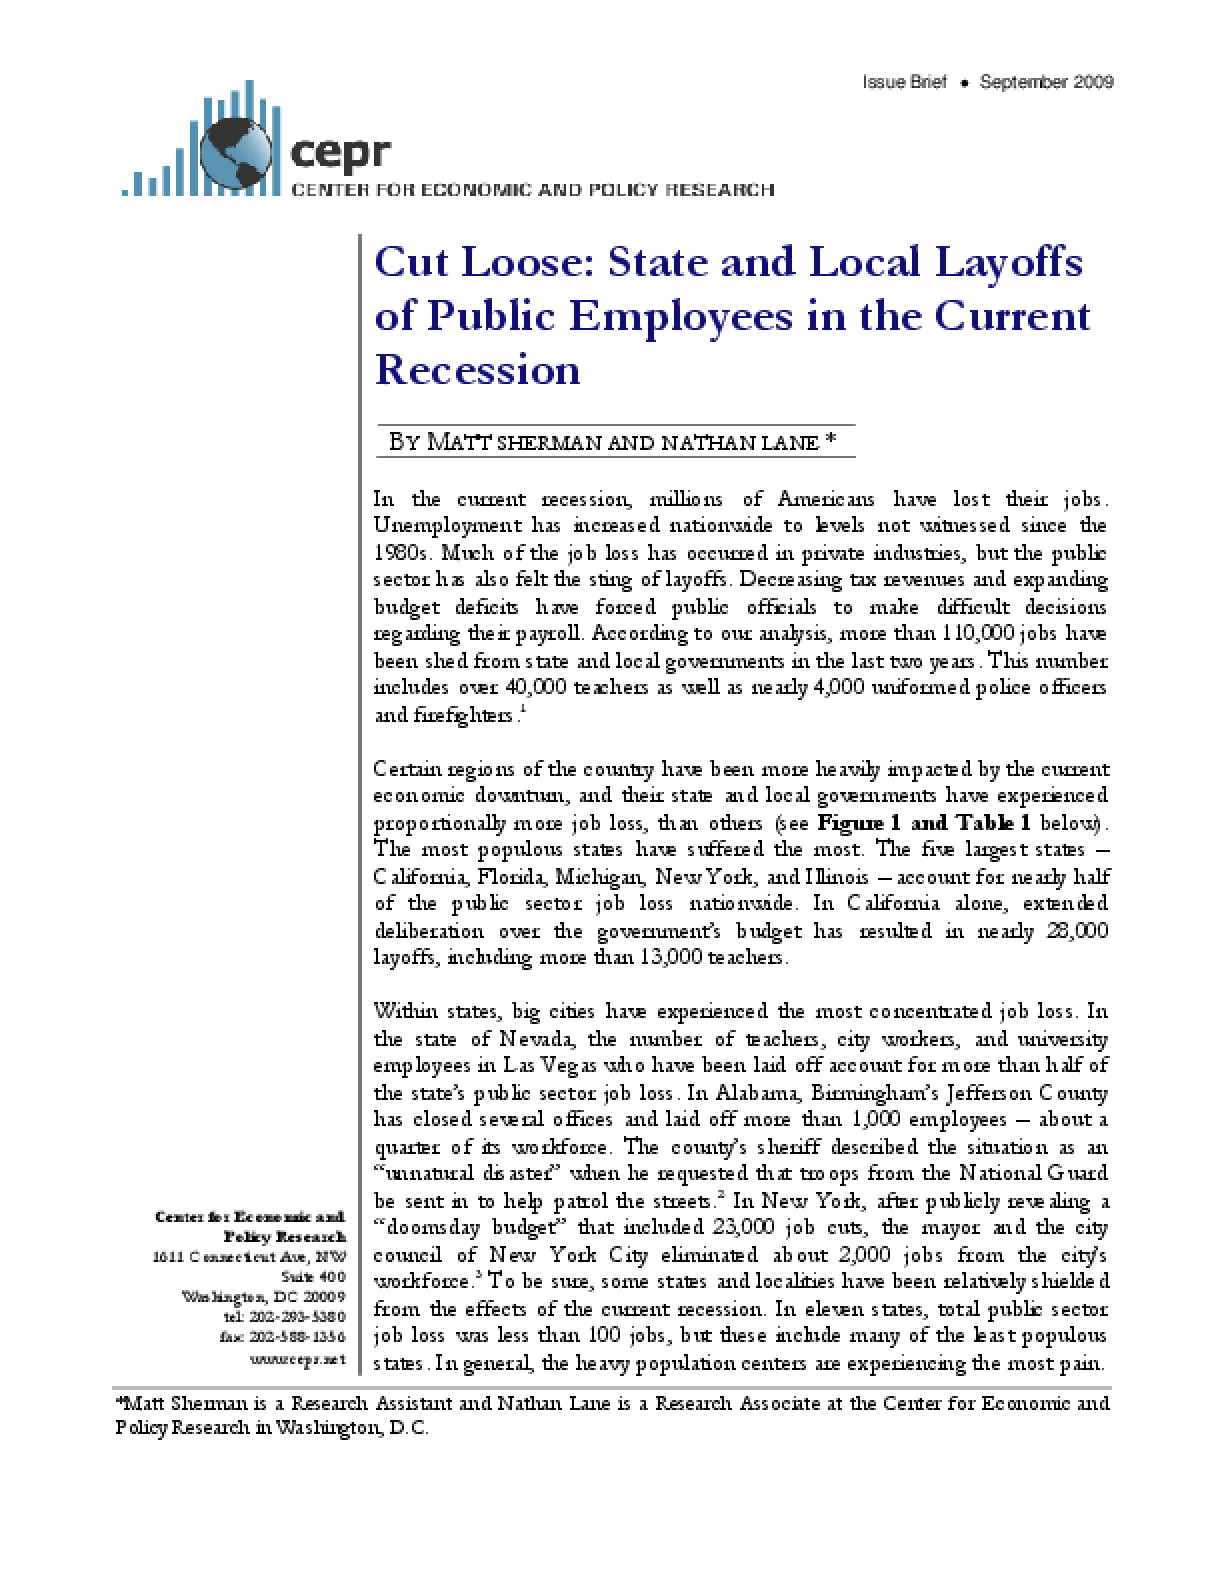 Cut Loose: State and Local Layoffs of Public Employees in the Current Recession